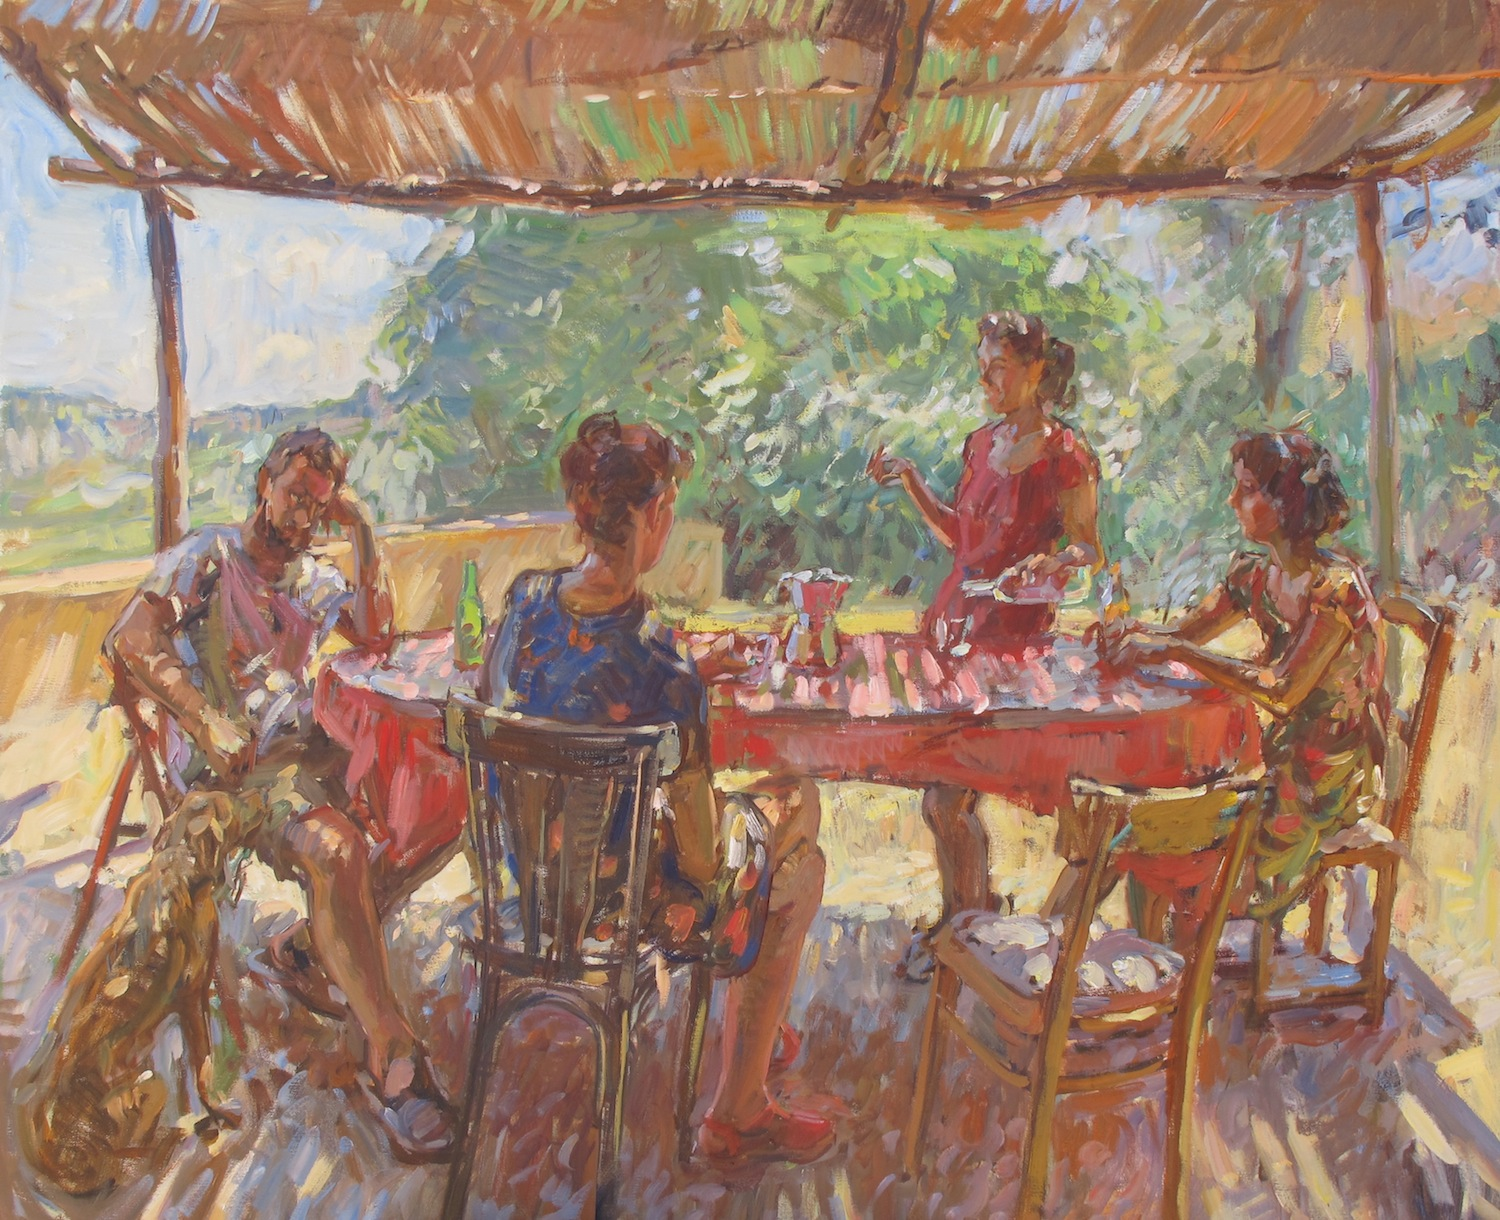 Lunch_Table_Ben_Fenske_39.4x47.2_Oil_2015_1438292234